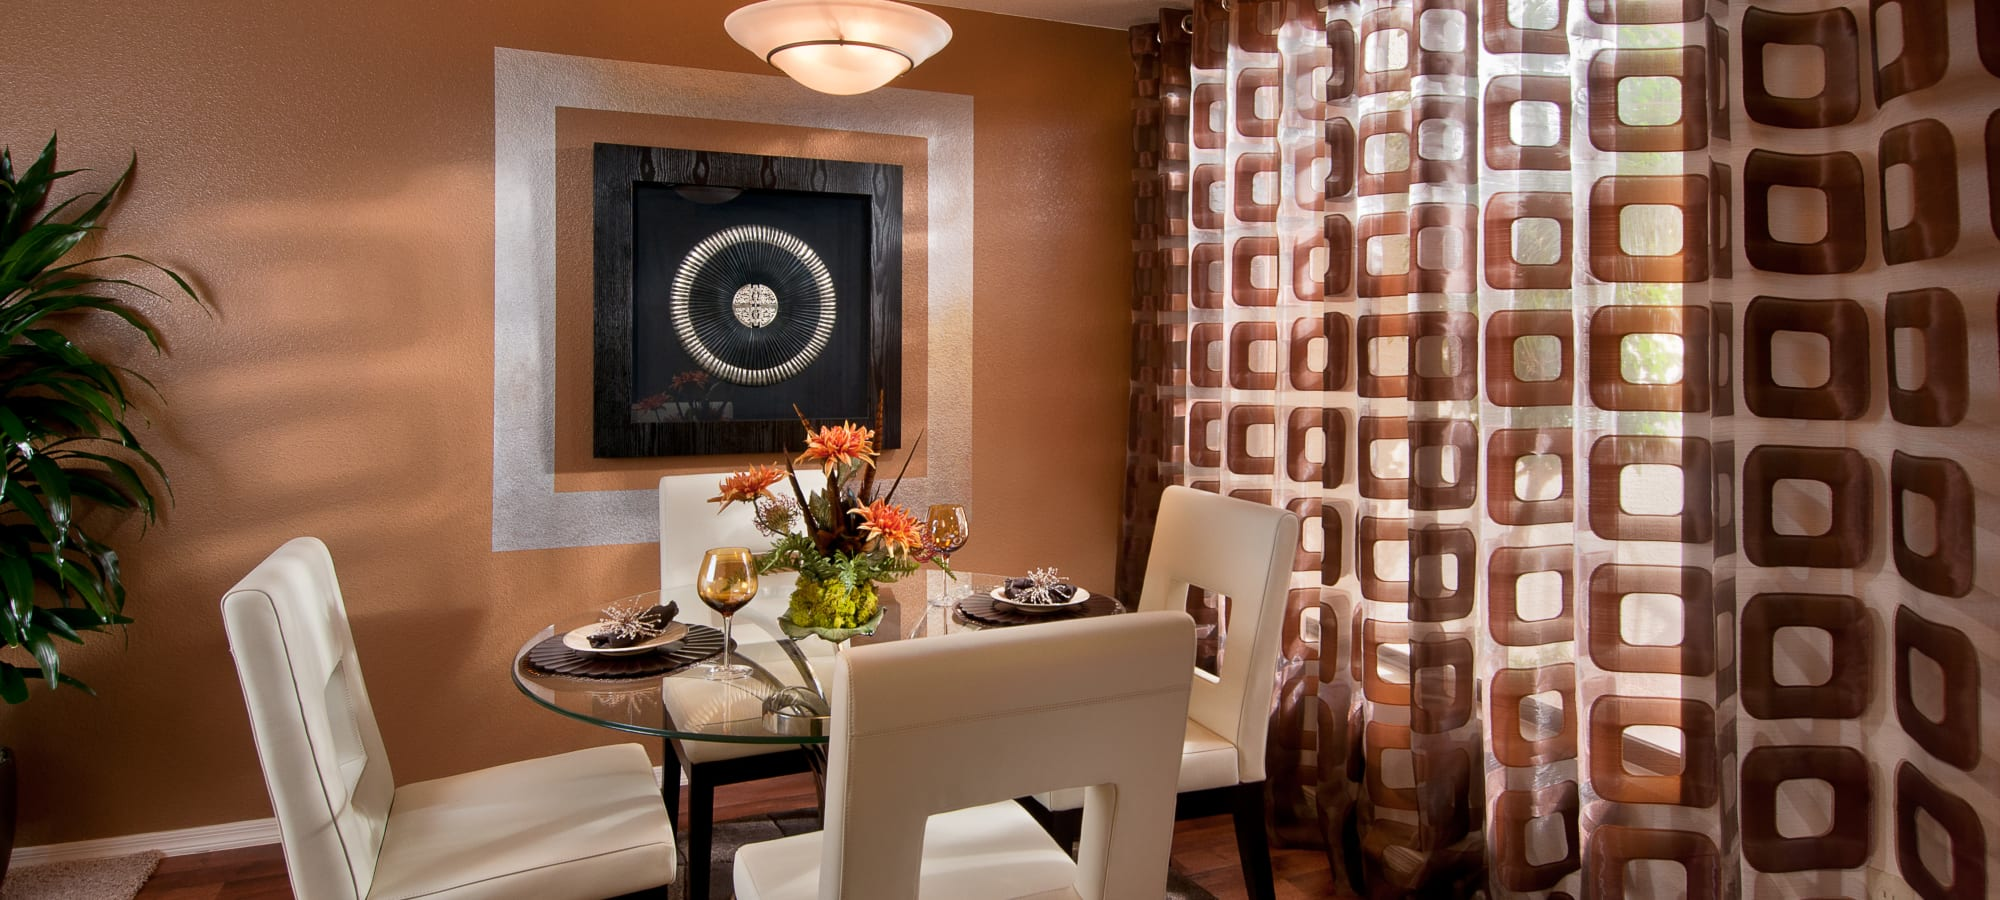 Contemporary decor and an accent wall in a model home's dining area at San Palmilla in Tempe, Arizona